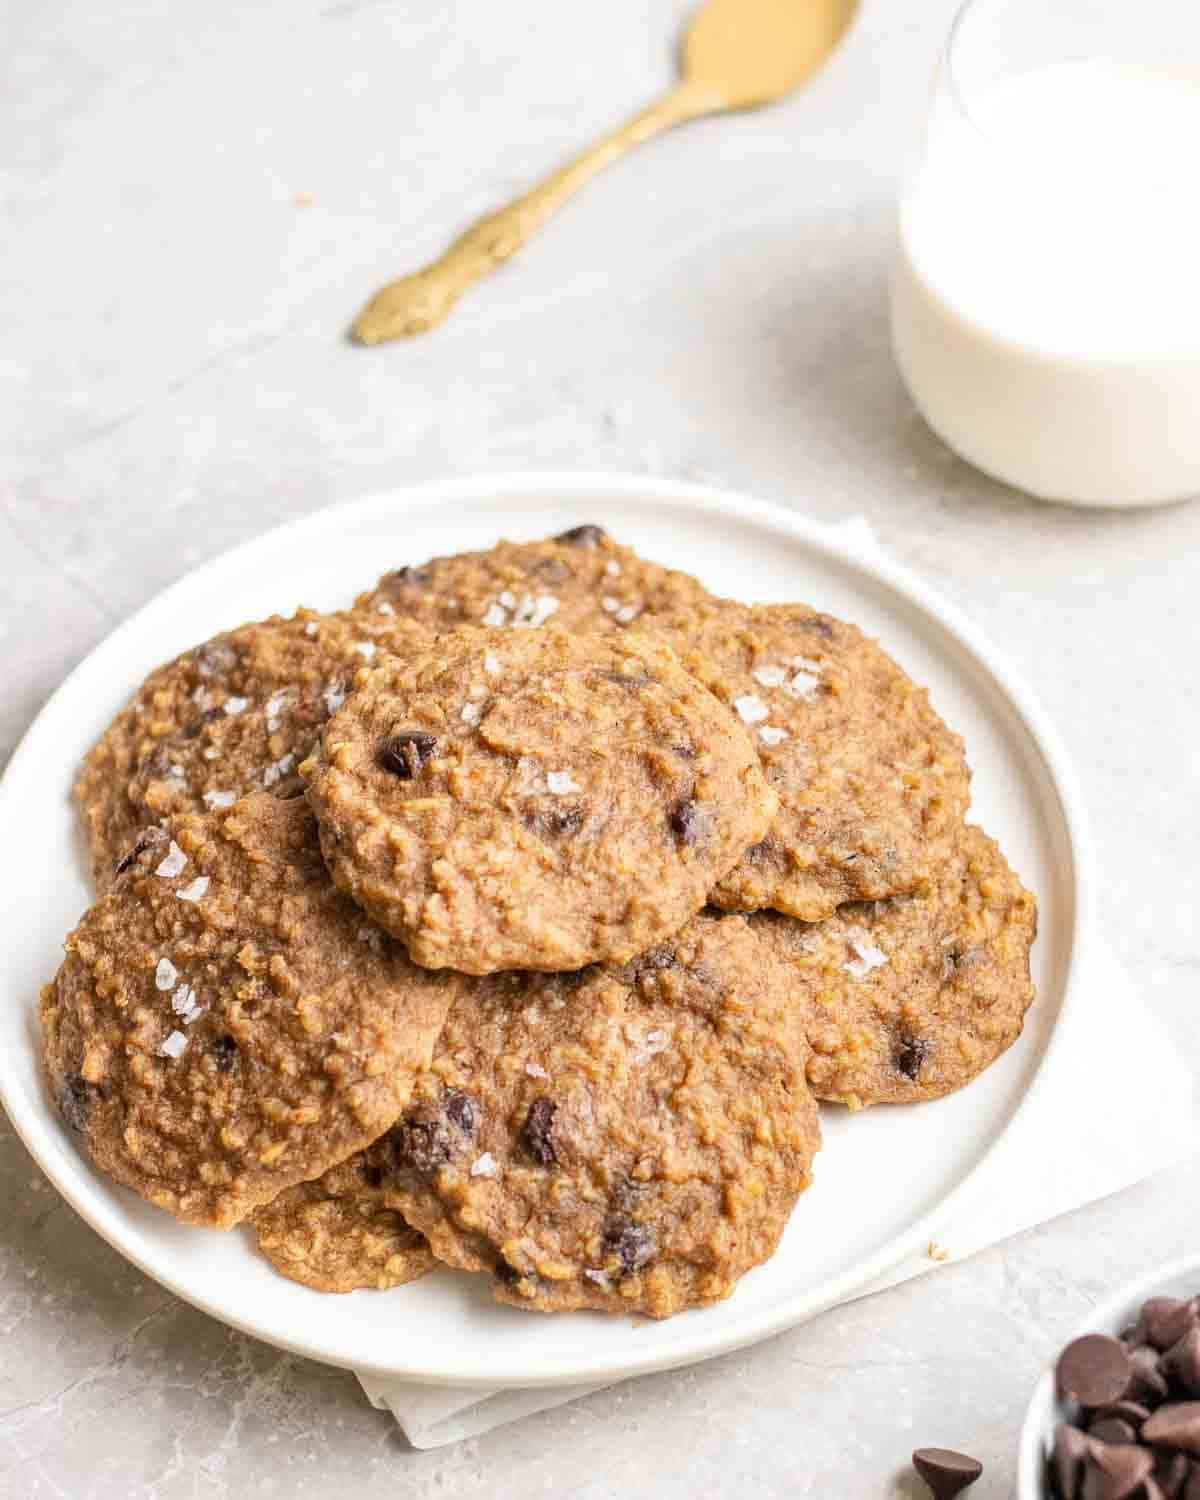 A plate of cookies with milk, chocolate chips and spoonful of peanut butter in the background.